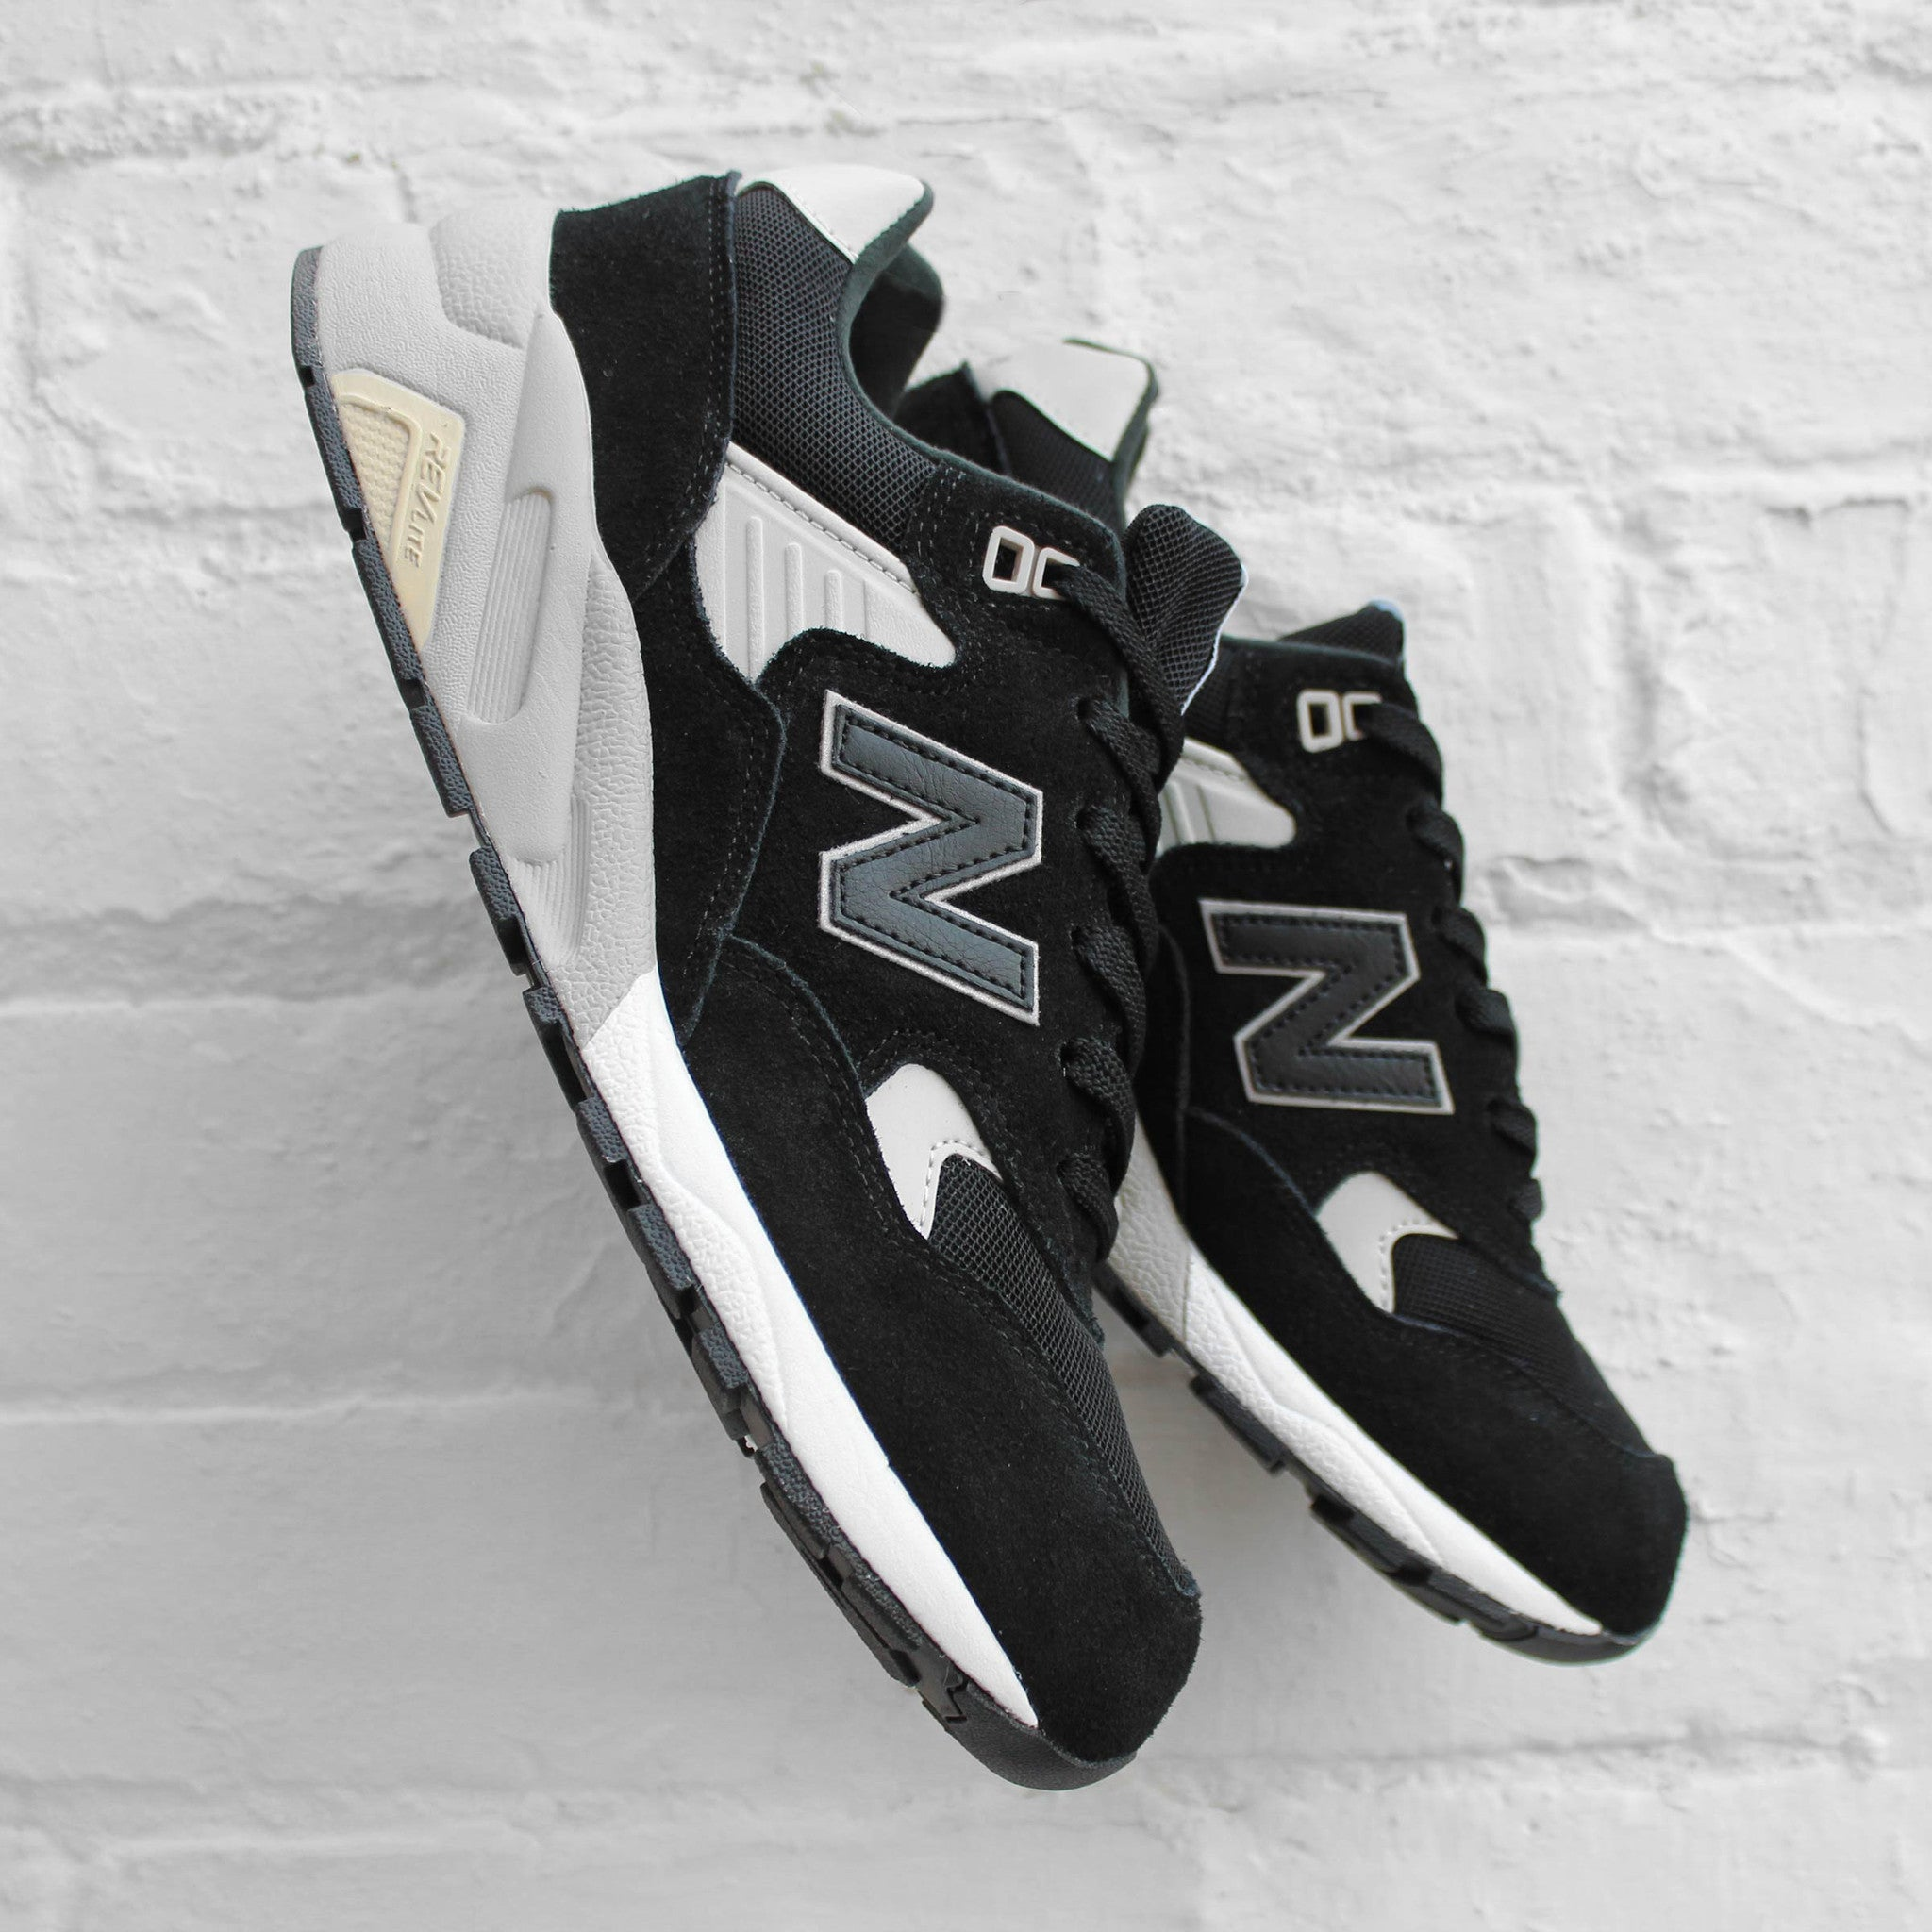 New Balance 580 Black/Grey MRT580BN